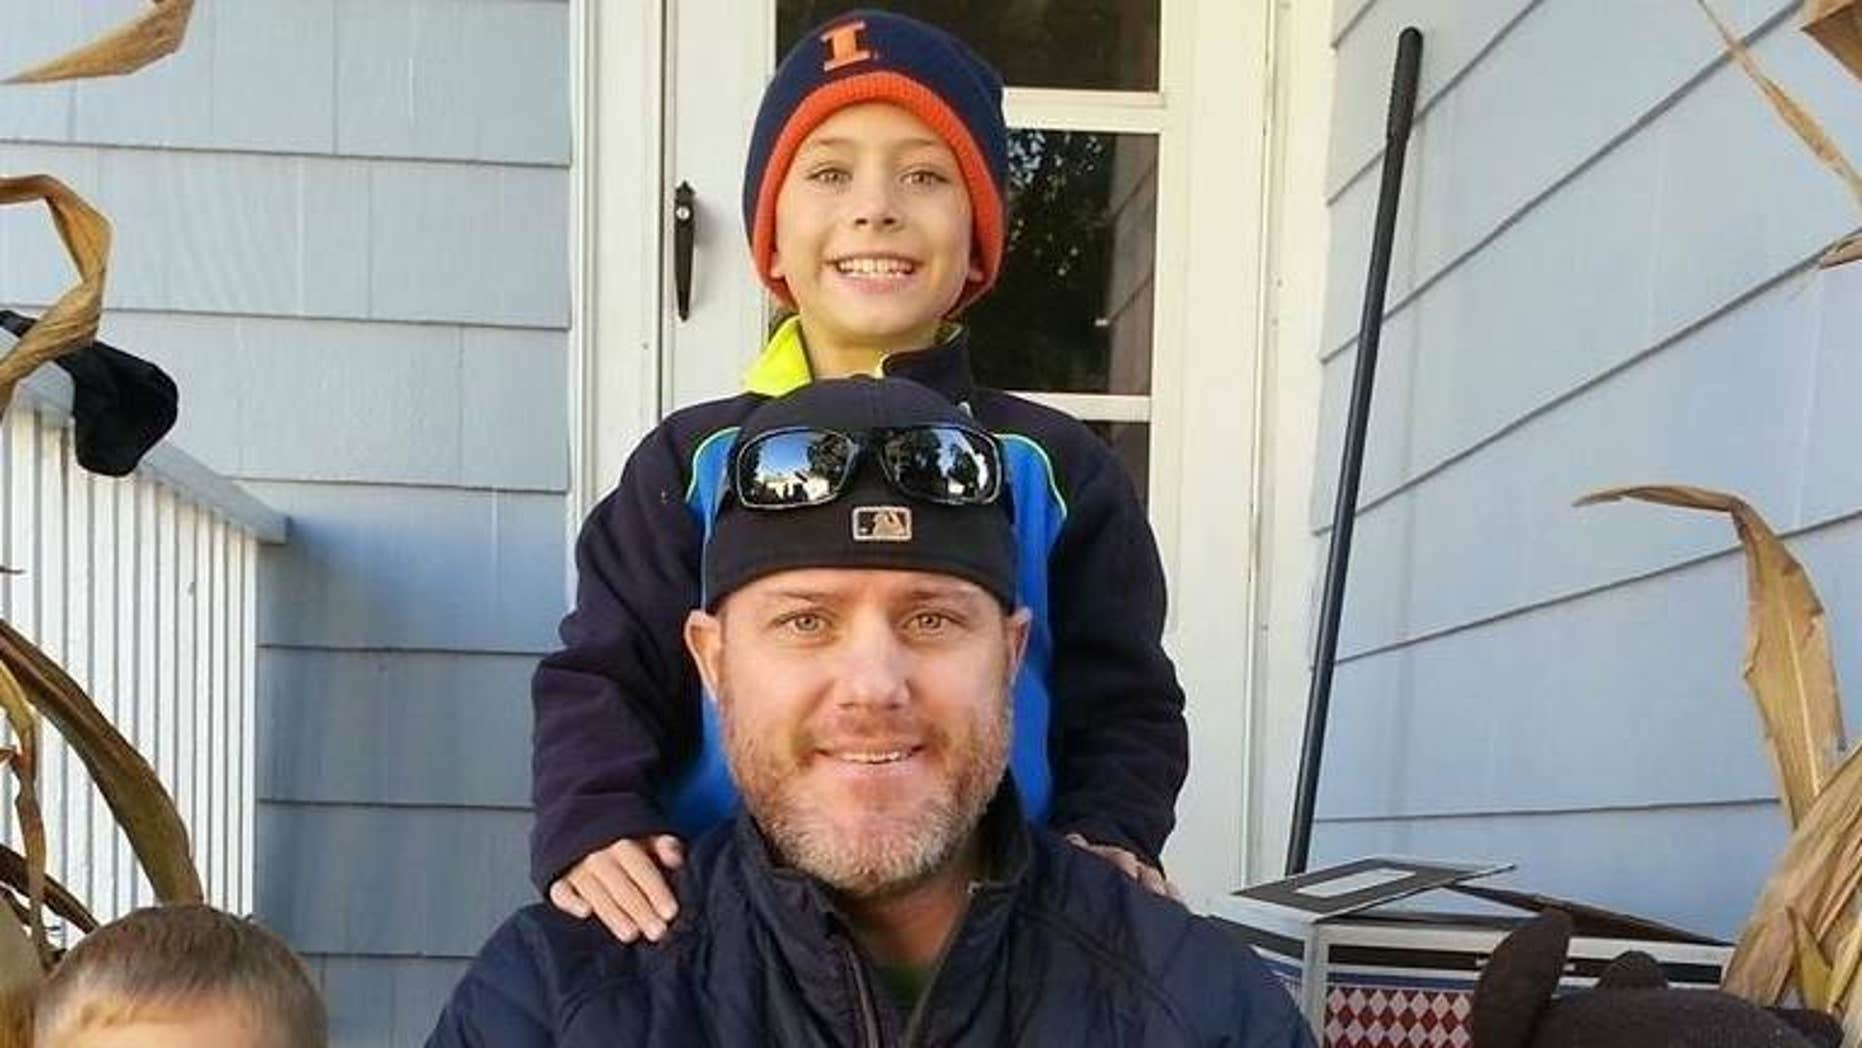 Scott Johnson was diagnosed with stage 4 colorectal cancer in April 2015.